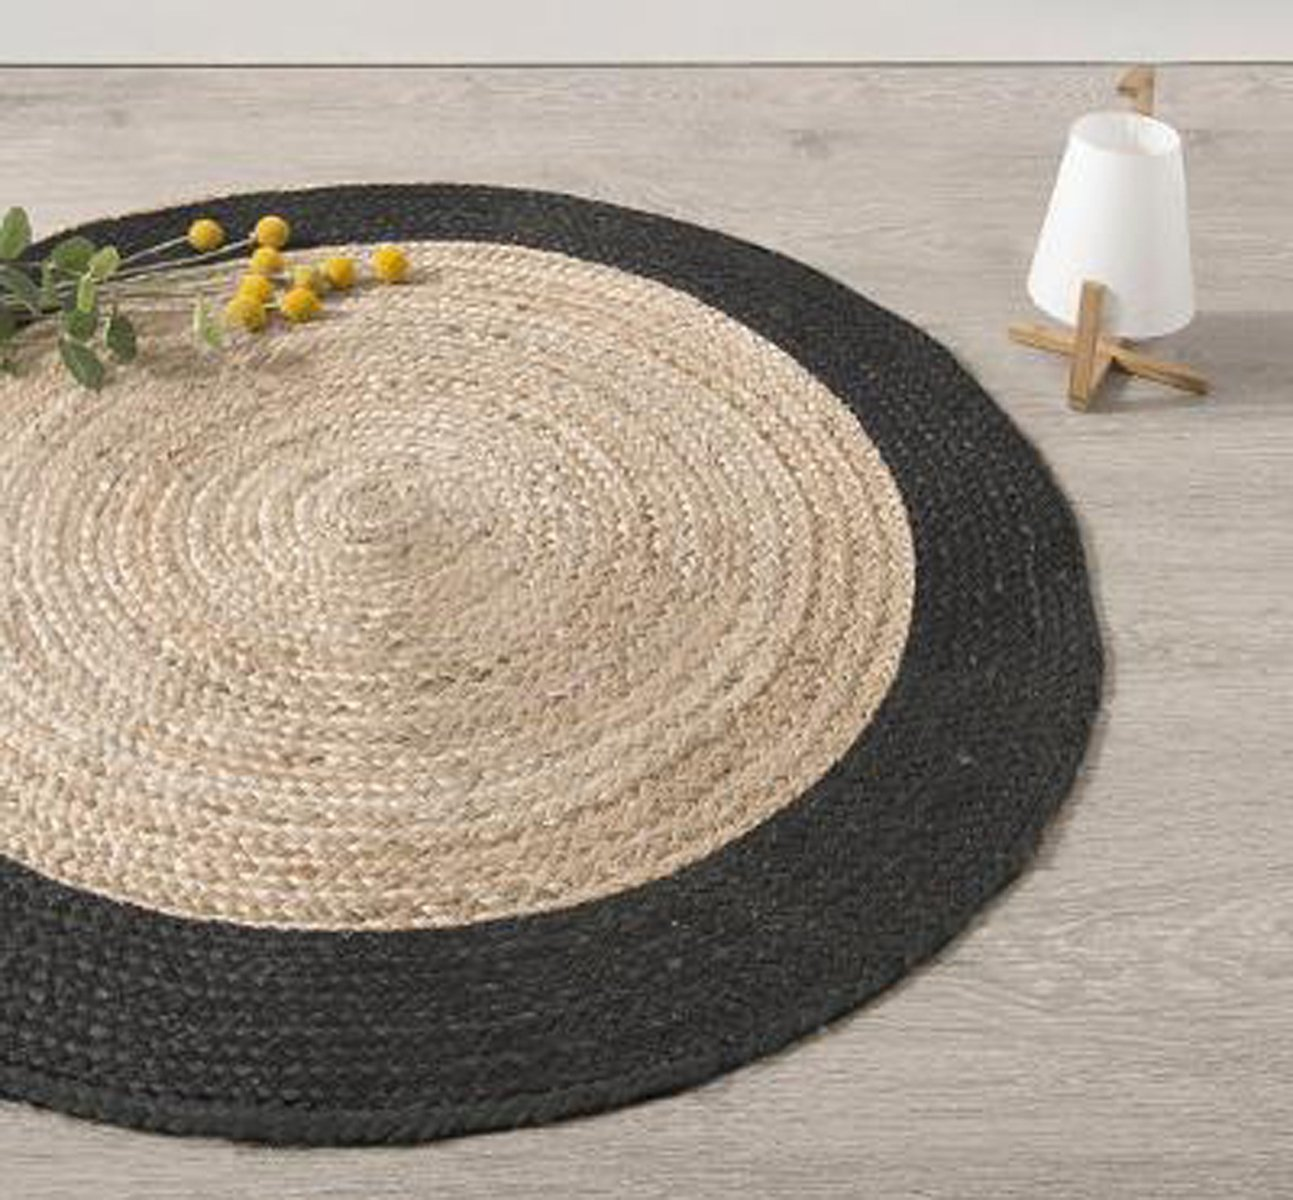 stunning tapis rond en jute naturel et noir diamtre cm pegane with maison du monde tapis rond. Black Bedroom Furniture Sets. Home Design Ideas